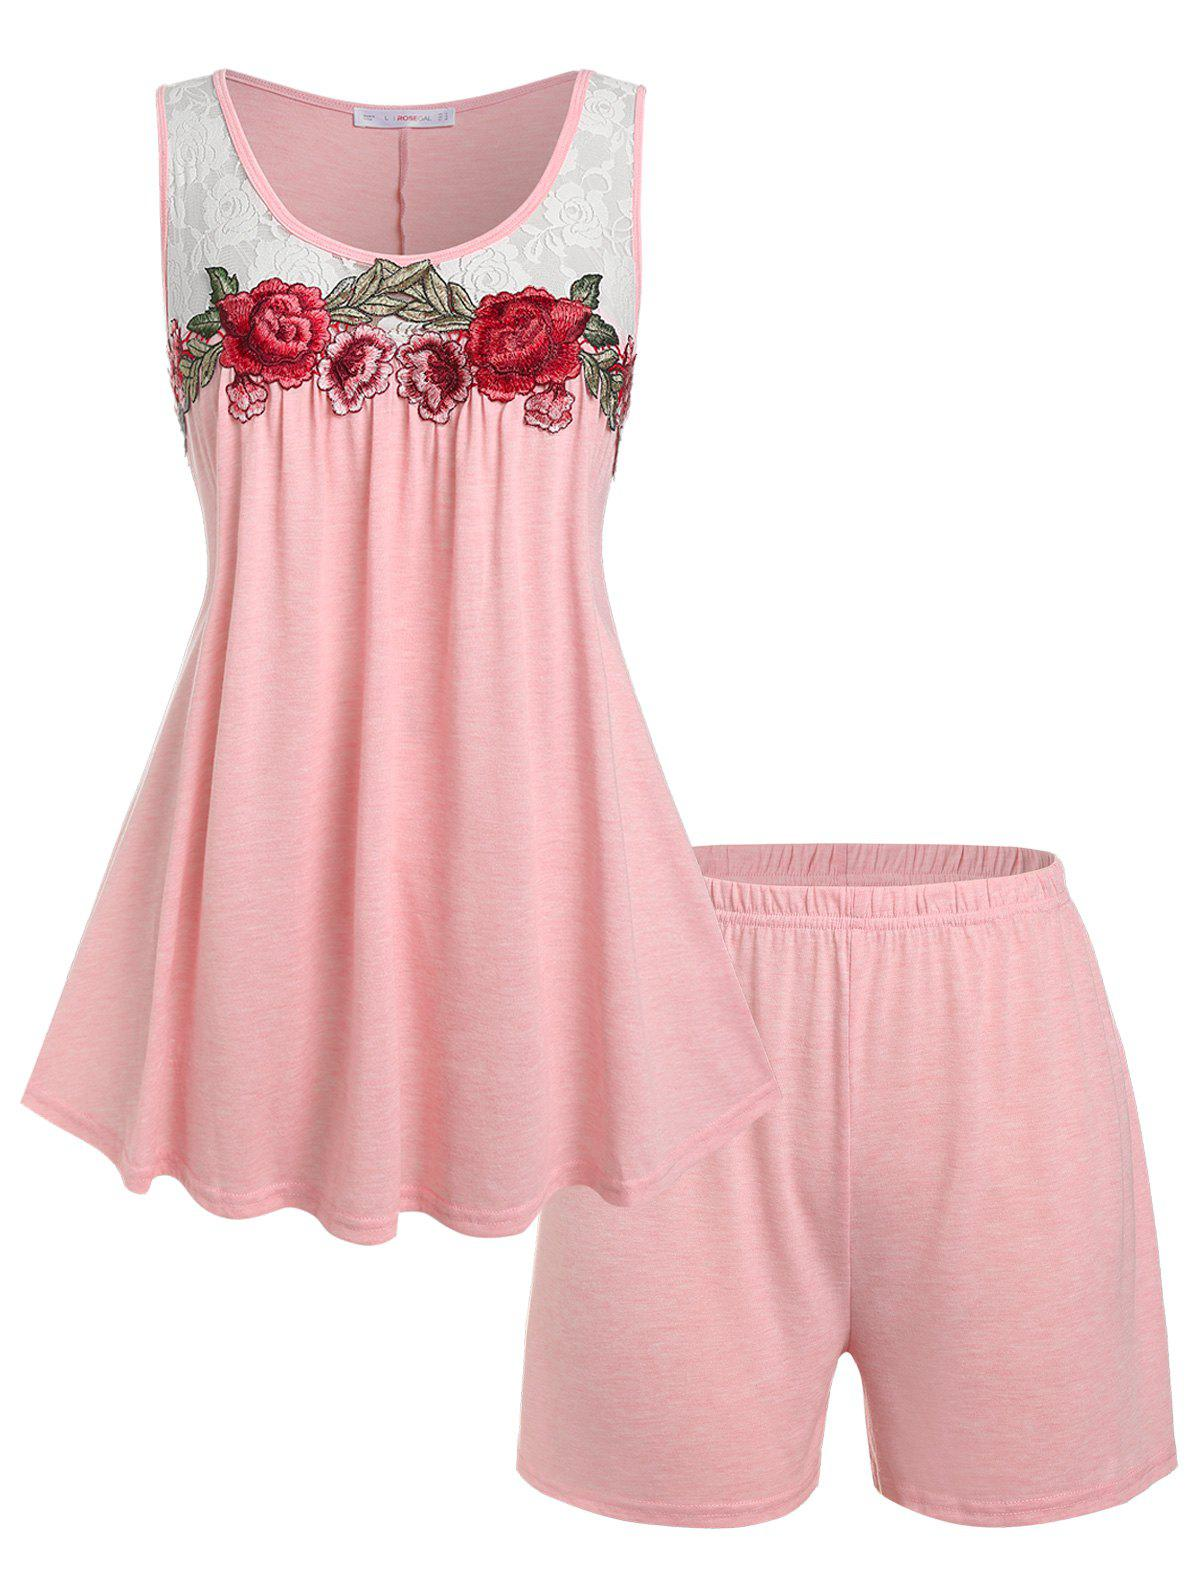 Store Plus Size Flower Embroidered Lace Panel PJ Shorts Set